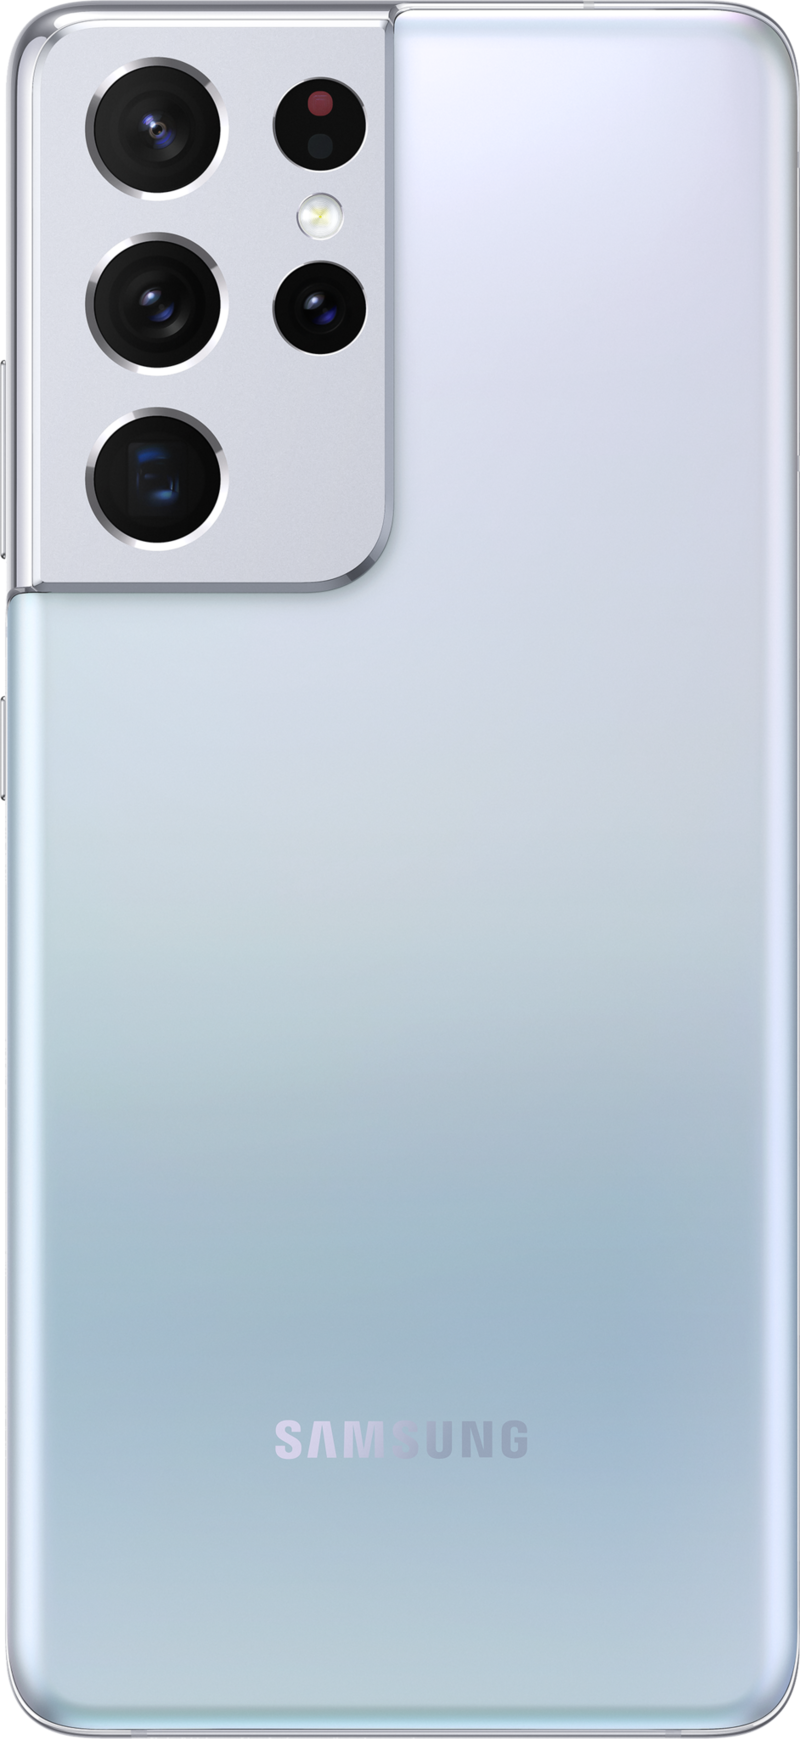 samsung-galaxy-s21-ultra-render-phantom-silver-back-official.png